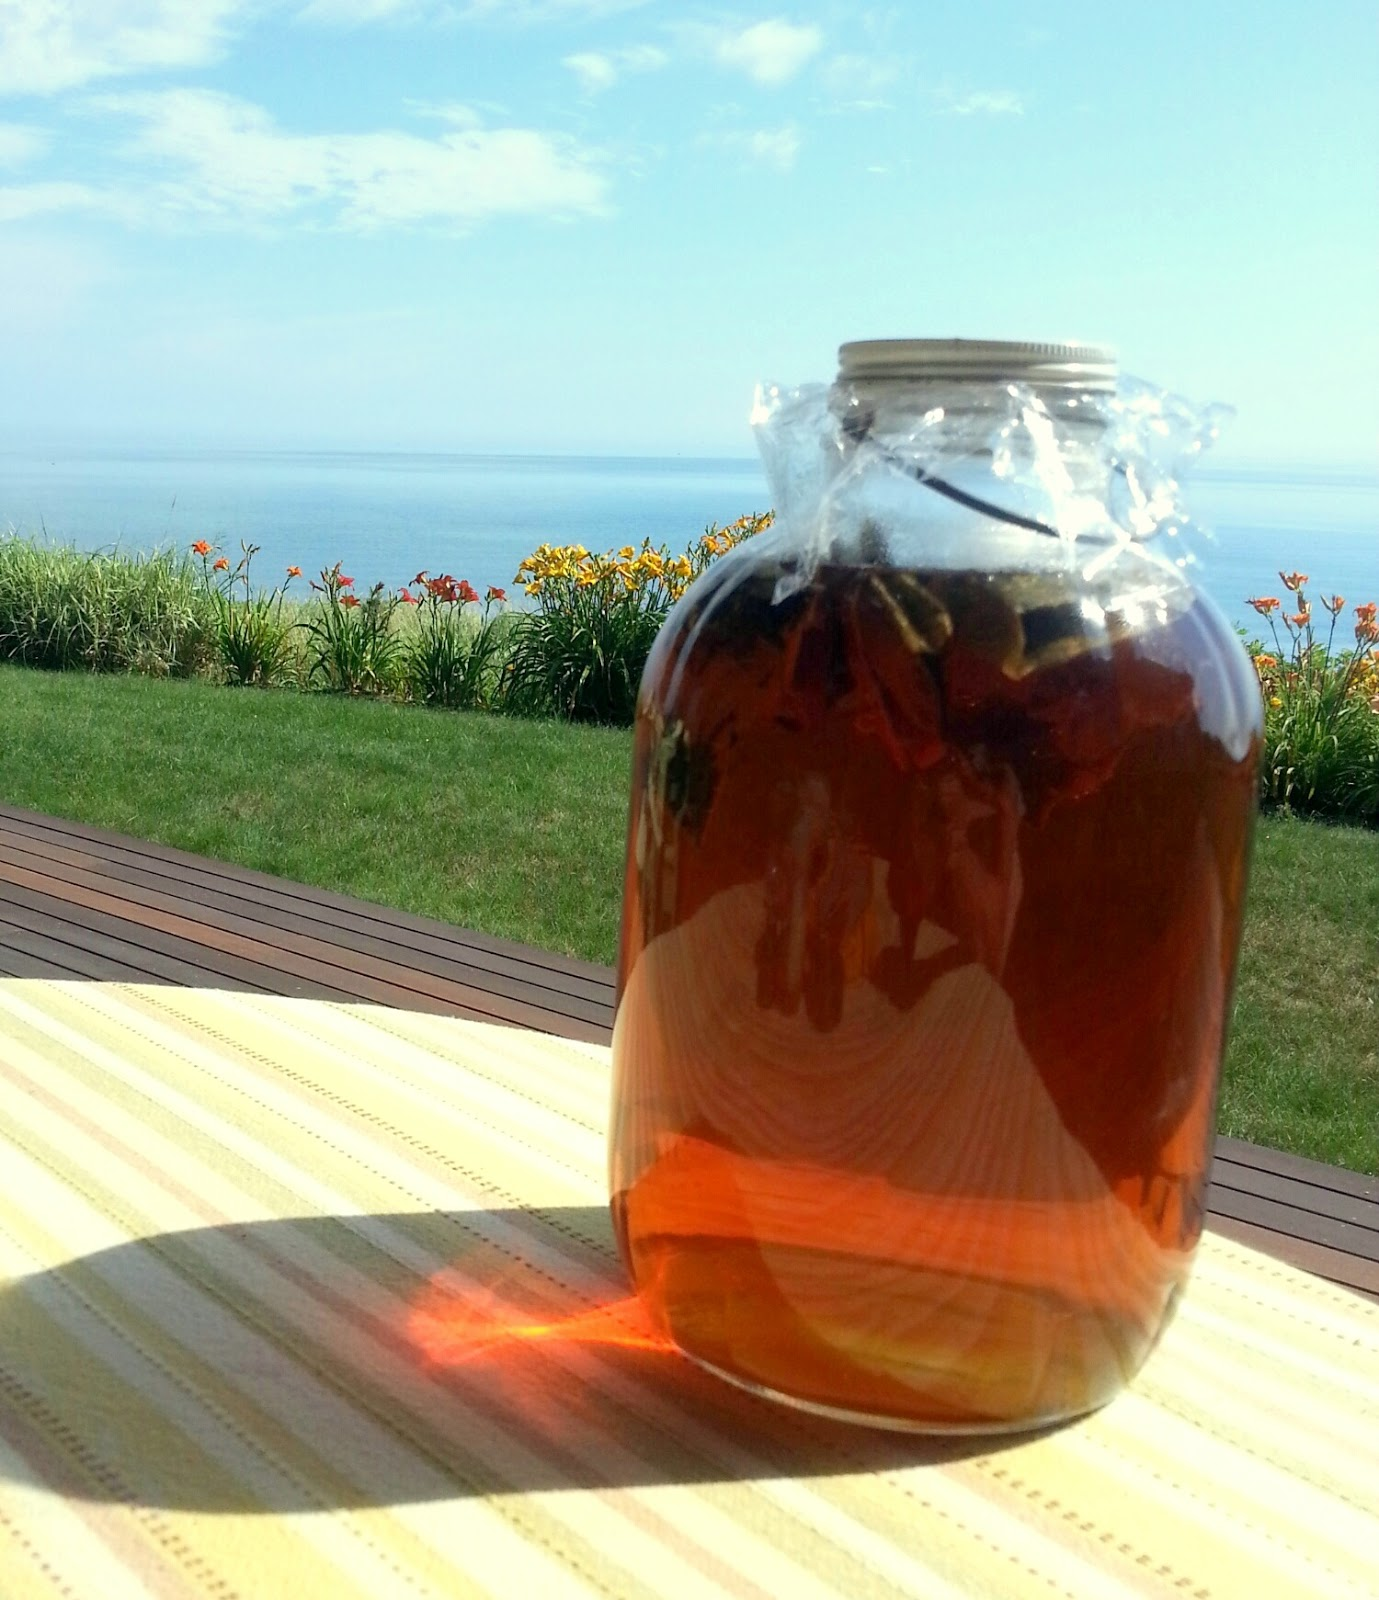 Cook with Cindy - Food, Fun, and more!: SUMMER MEANS SUN TEA!